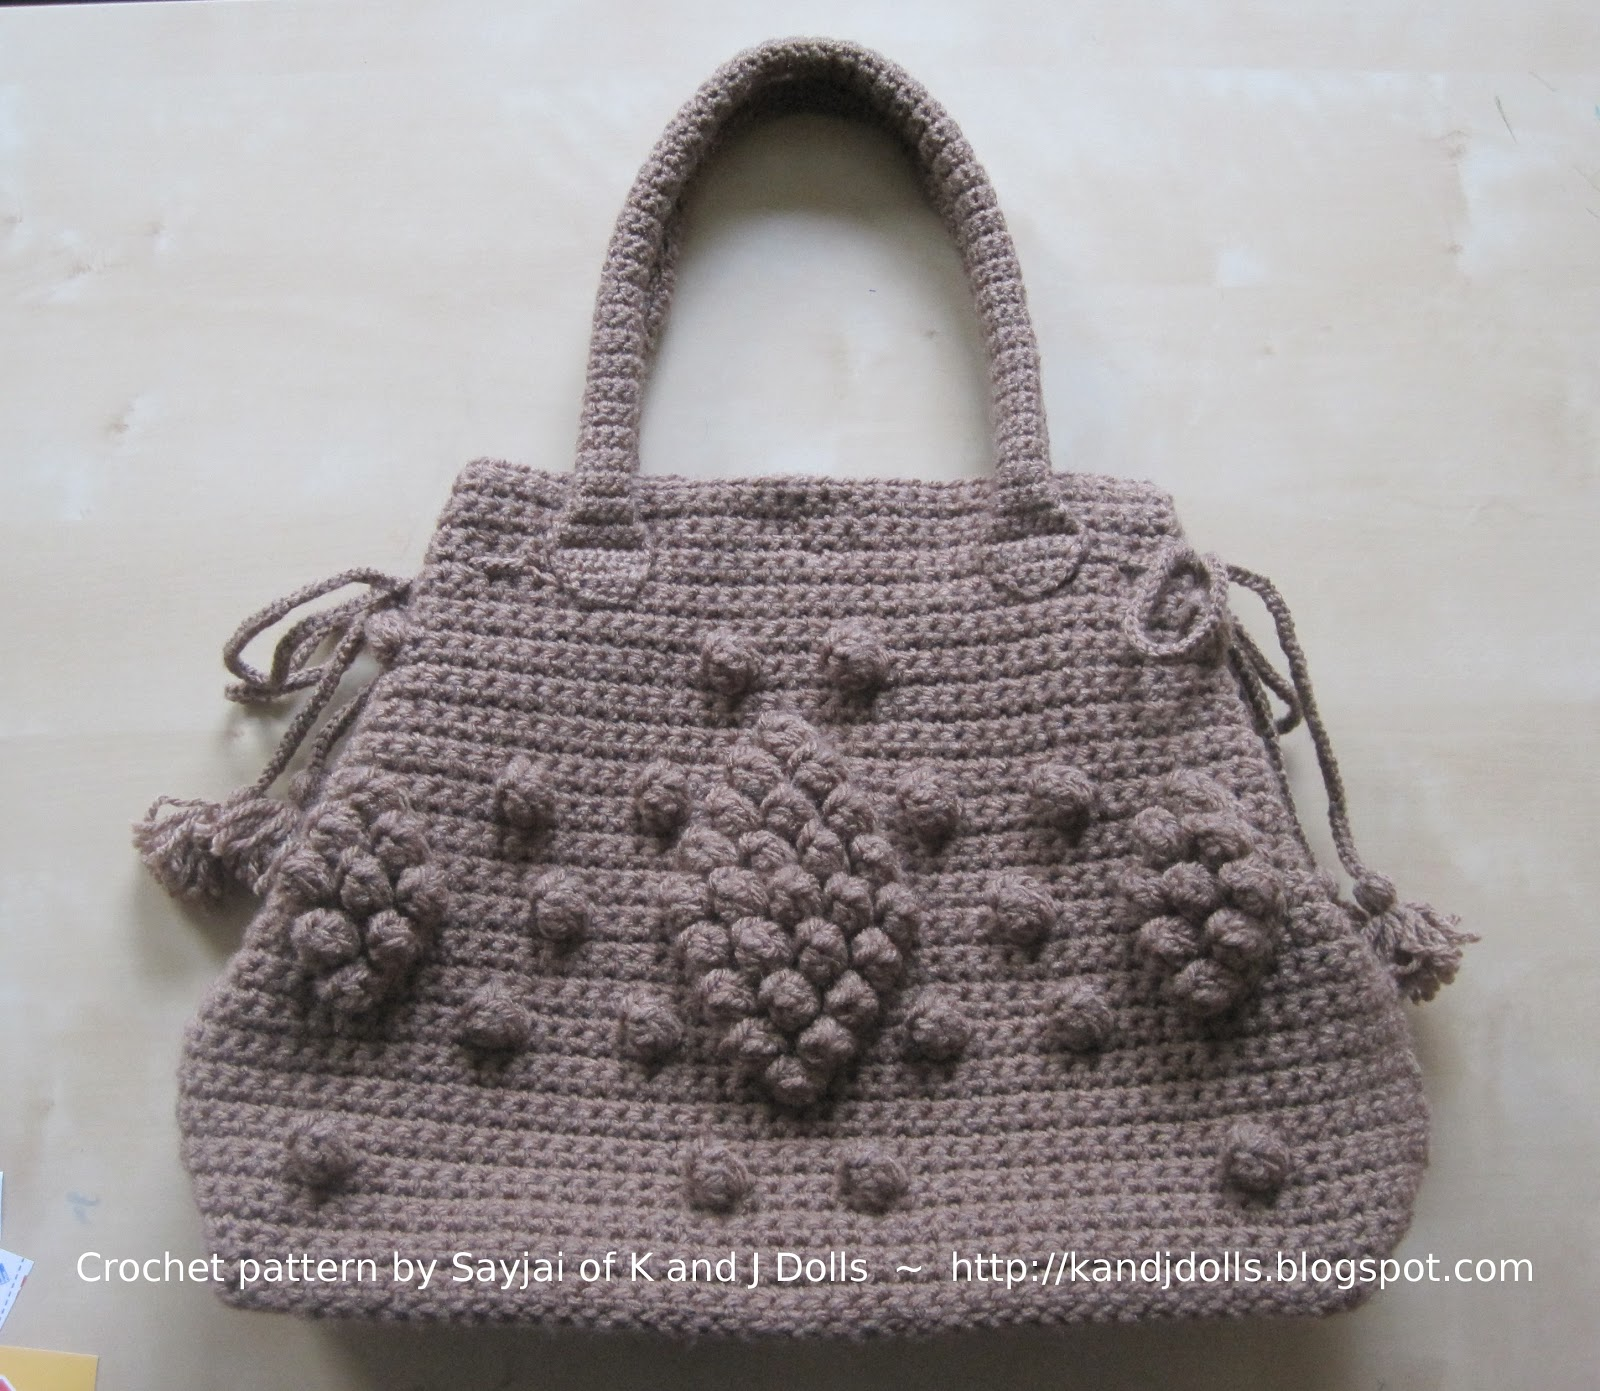 Crochet Purse : Taupe Bag crochet pattern - Sayjai Amigurumi Crochet Patterns ~ K and ...